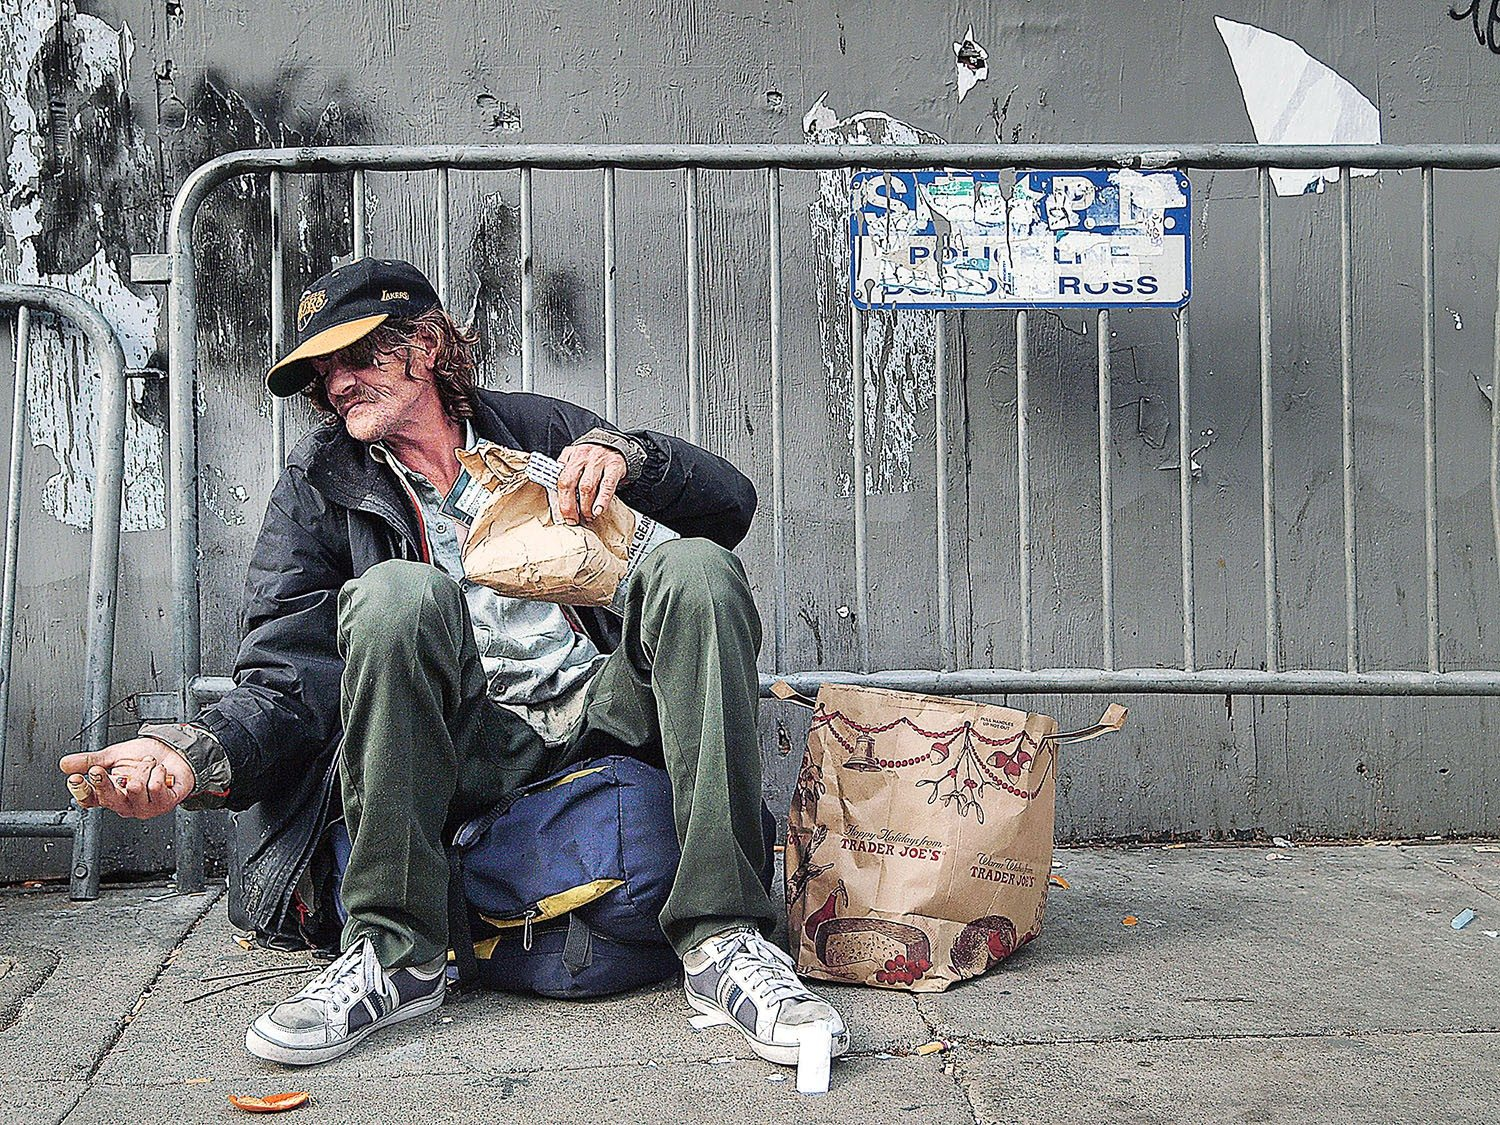 How to Help People in Poverty and Homelessness with Daily Habits